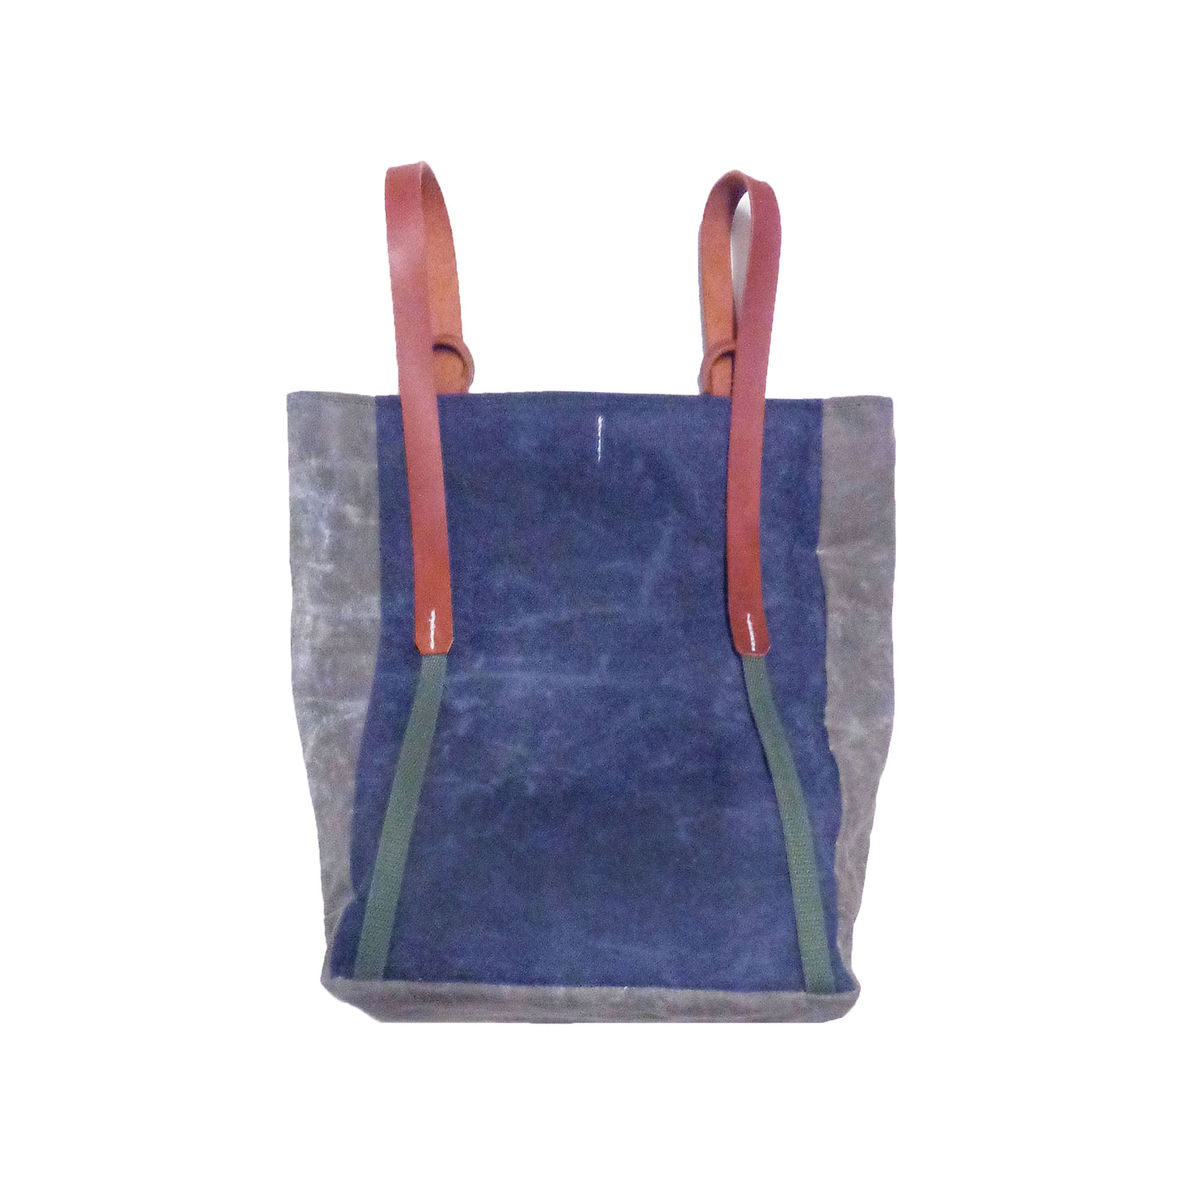 Convertible Bodega Tote, Backpack - Indigo Brickhouse - product images  of